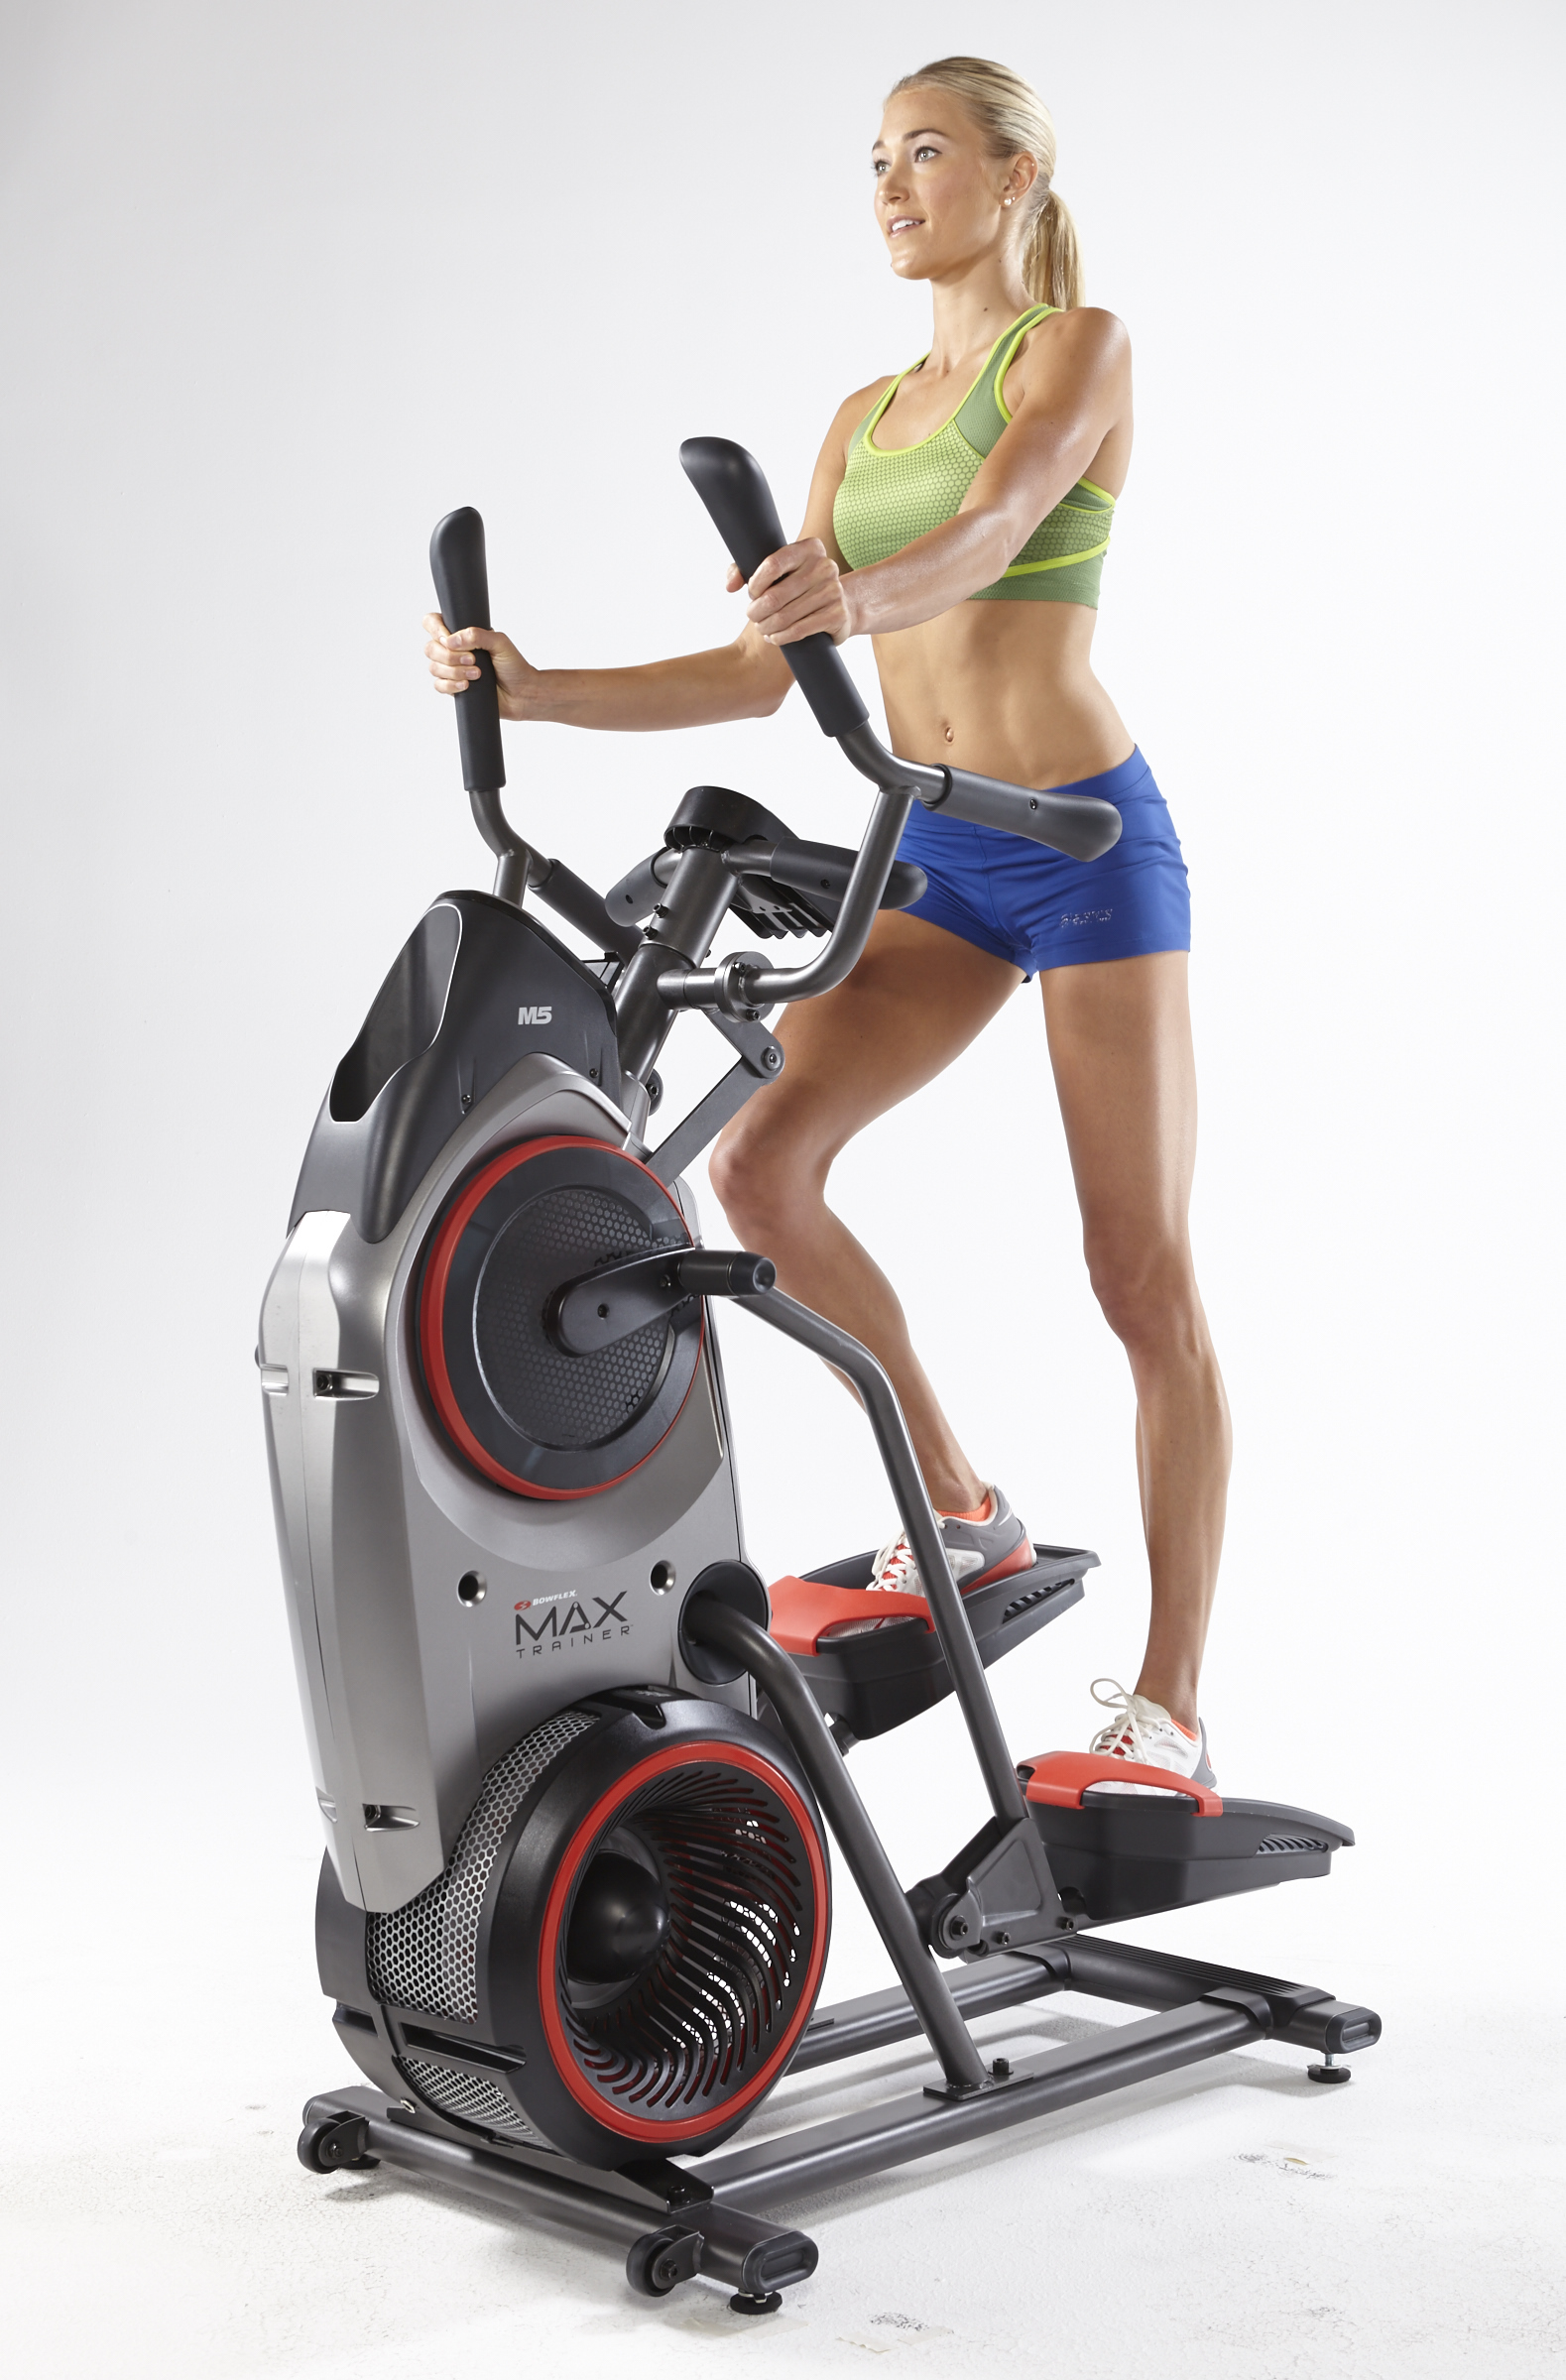 Delivers A Revolutionary New High Performance Cardio Machine Business Wire